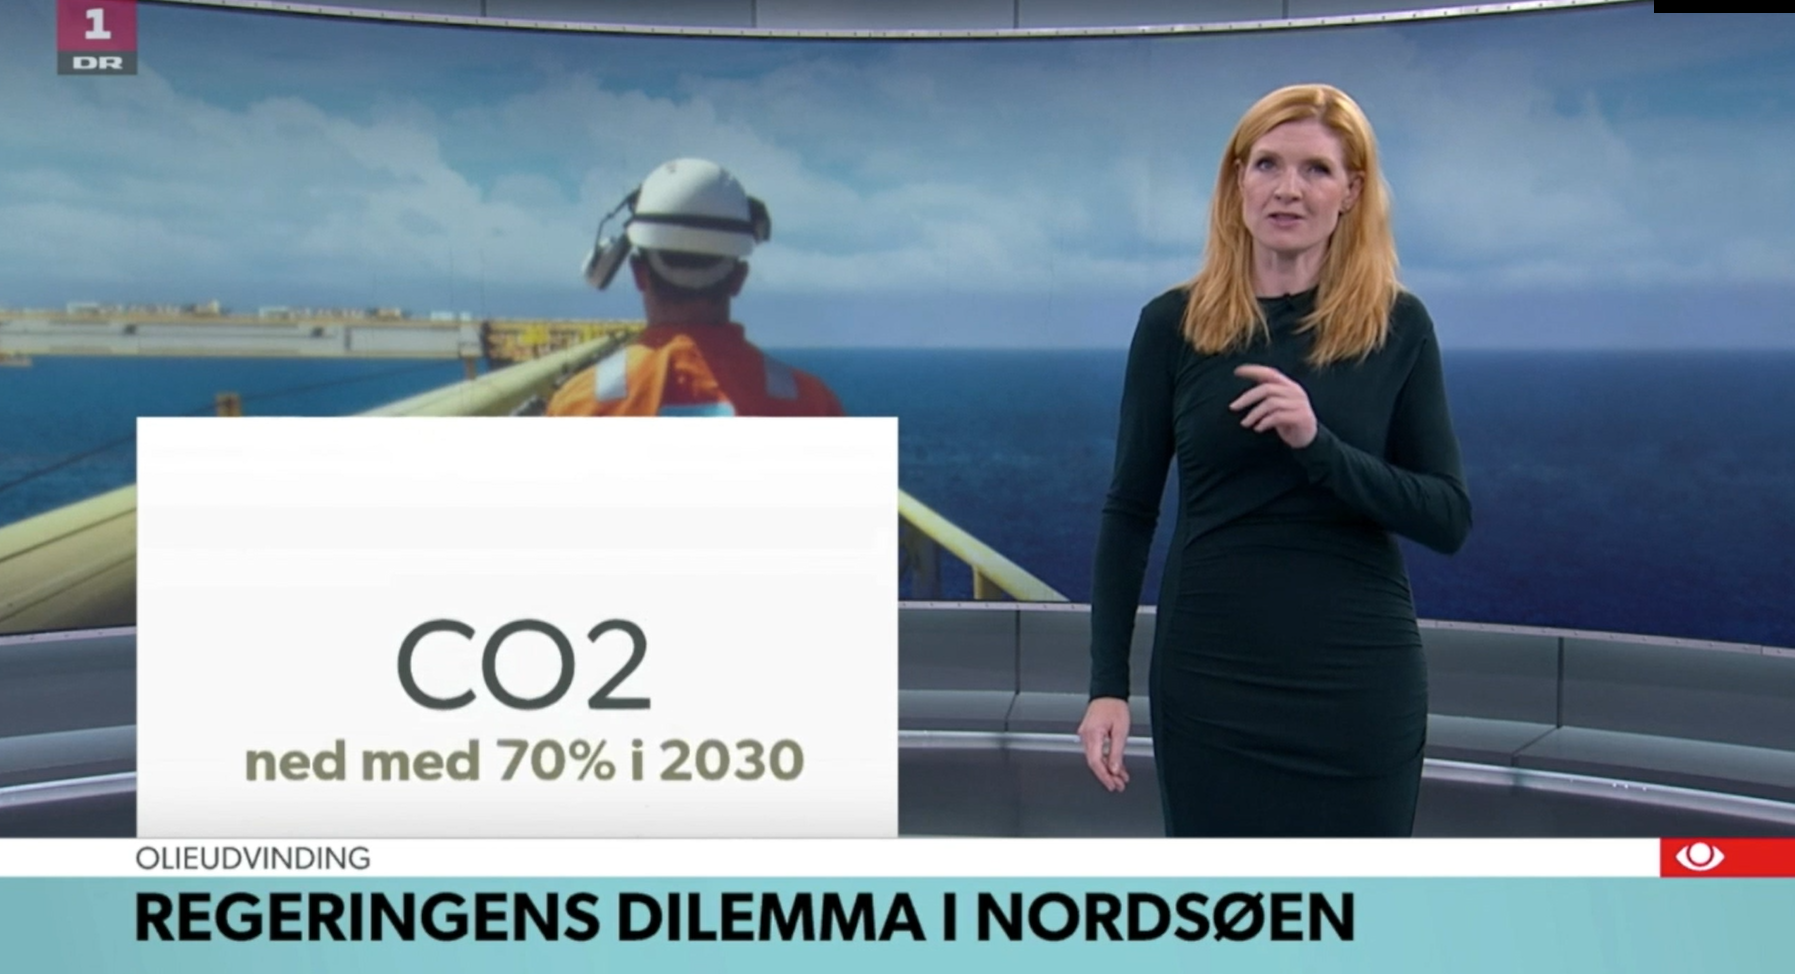 Denmark could be close to phasing out oil and gas extraction. Here's why it would matter.